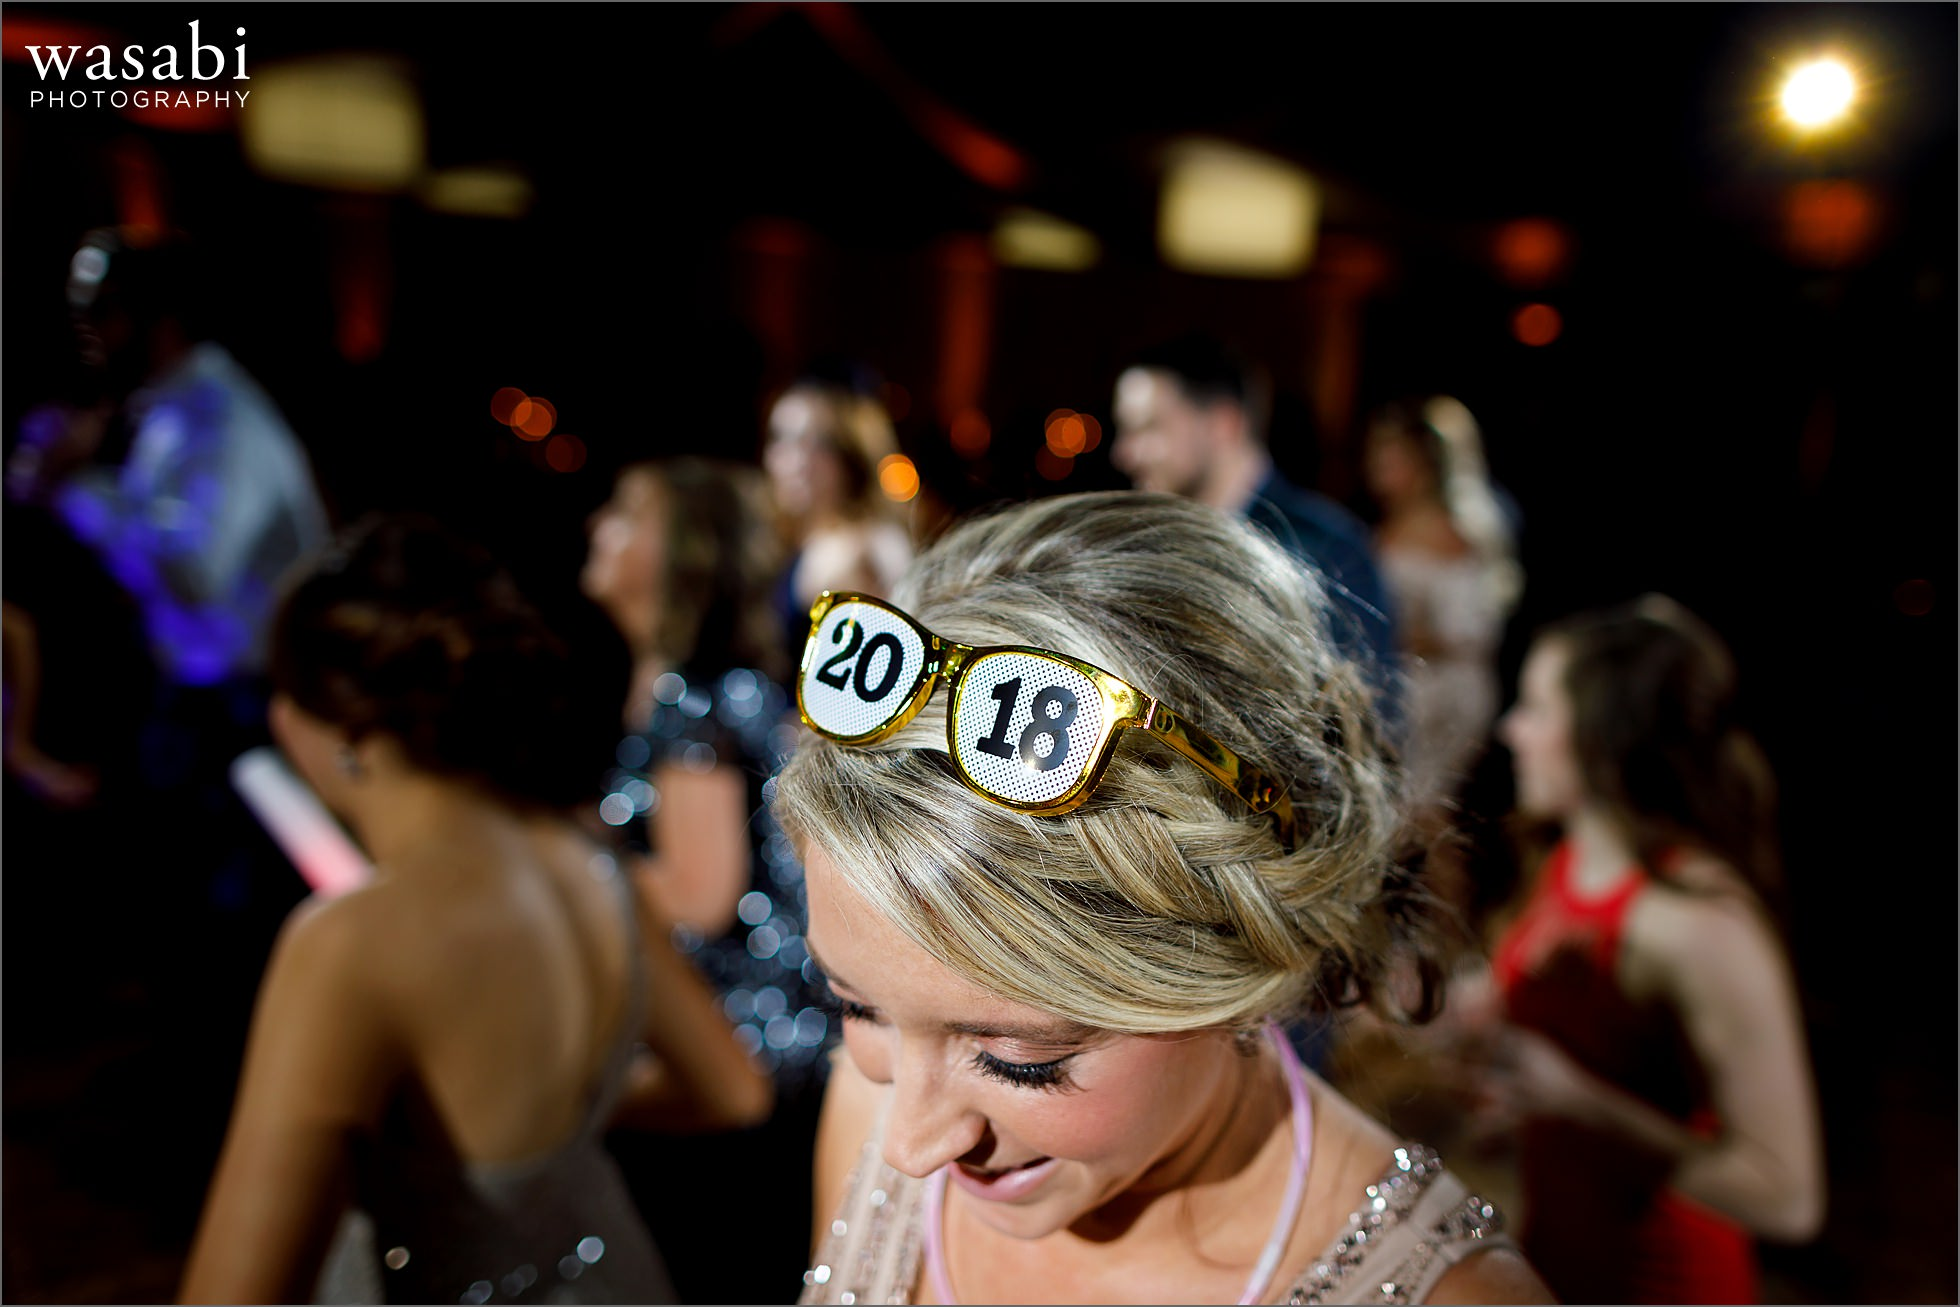 bridesmaid wearing 2018 glasses during New Years Eve wedding reception at Chicago Marriott Lincolnshire Resort